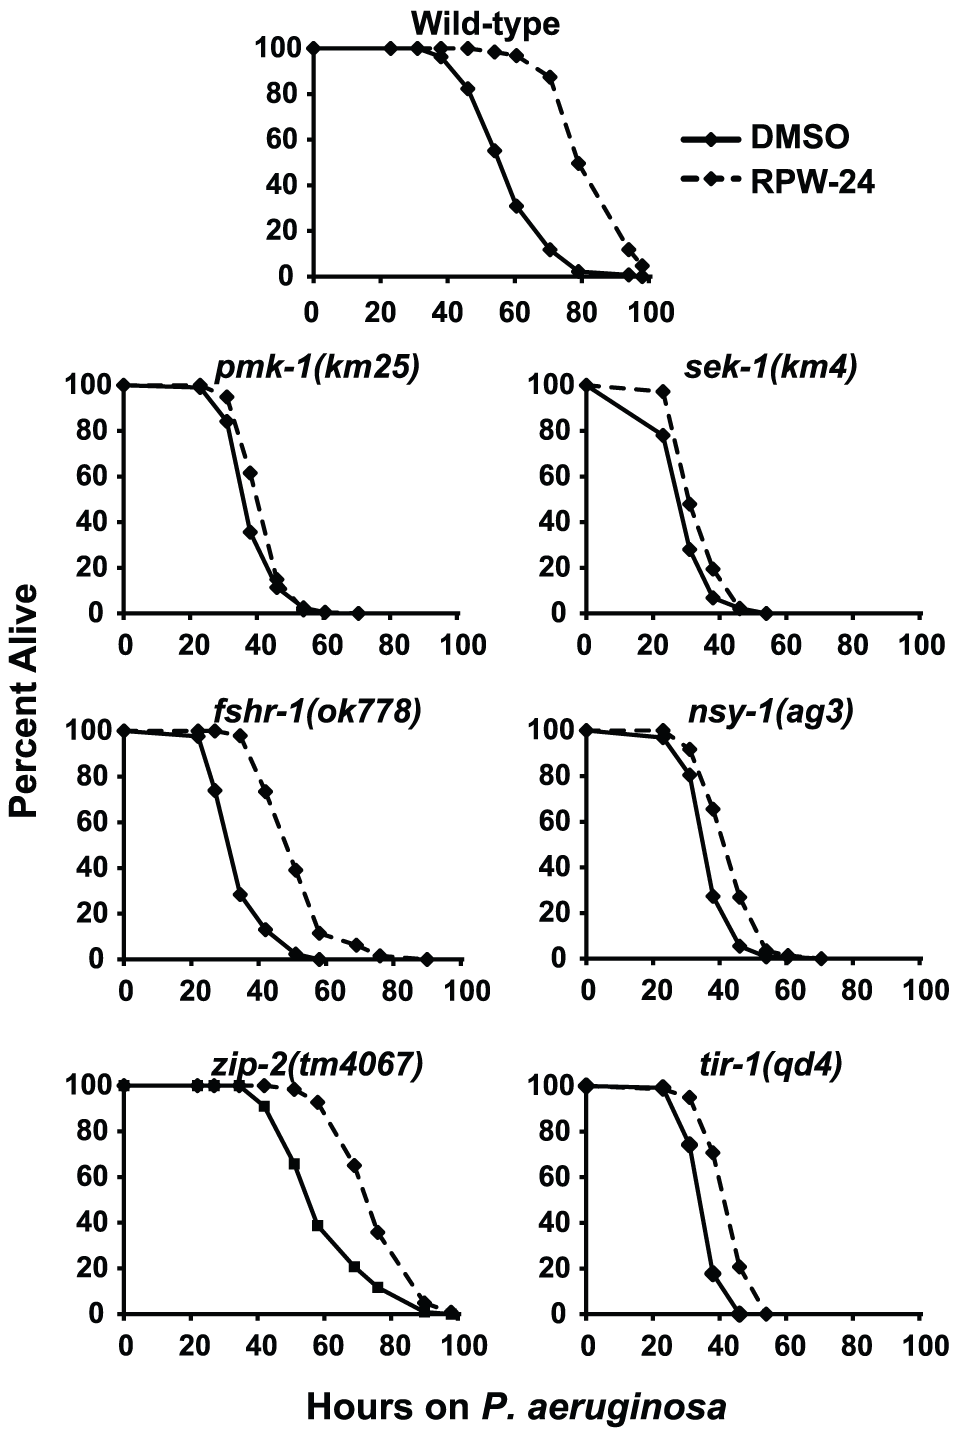 Full efficacy of RPW-24 in prolonging the lifespan of <i>C. elegans</i> infected with <i>P. aeruginosa</i> requires the p38 MAP kinase signaling cassette.